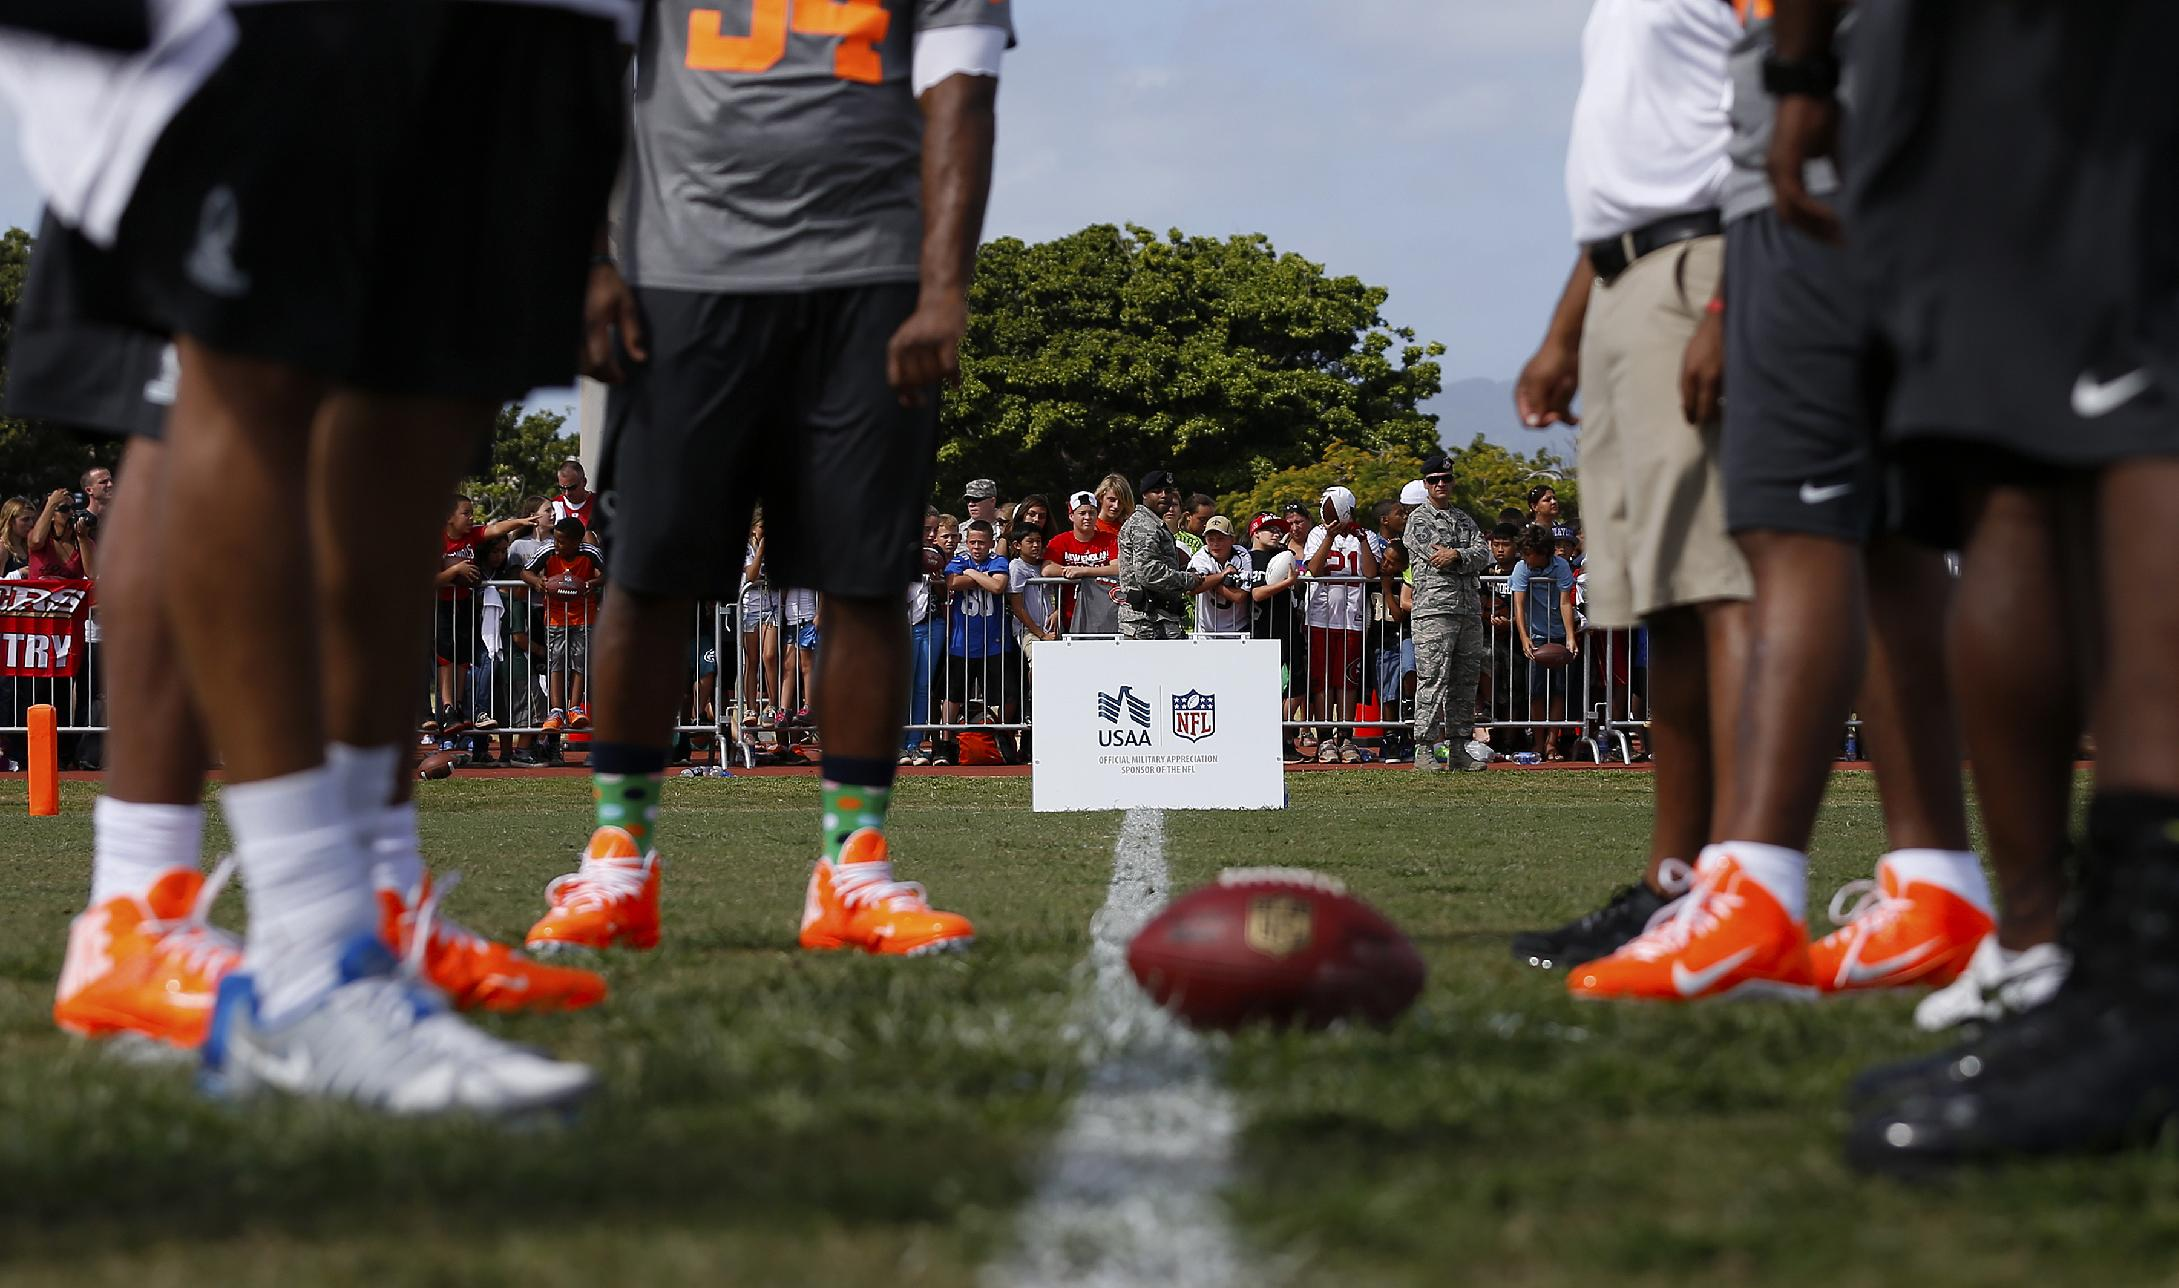 NFL Pro Bowl players from Team Rice gather on the line of scrimmage during an NFL Pro Bowl practice on Earhart Field at Joint Base Pearl Harbor-Hickam sponsored by the USAA the official military sponsor of the NFL on Thursday January 23, 2014 in Honolulu, Hawaii. (Aaron M. Sprecher/AP Images for USAA)